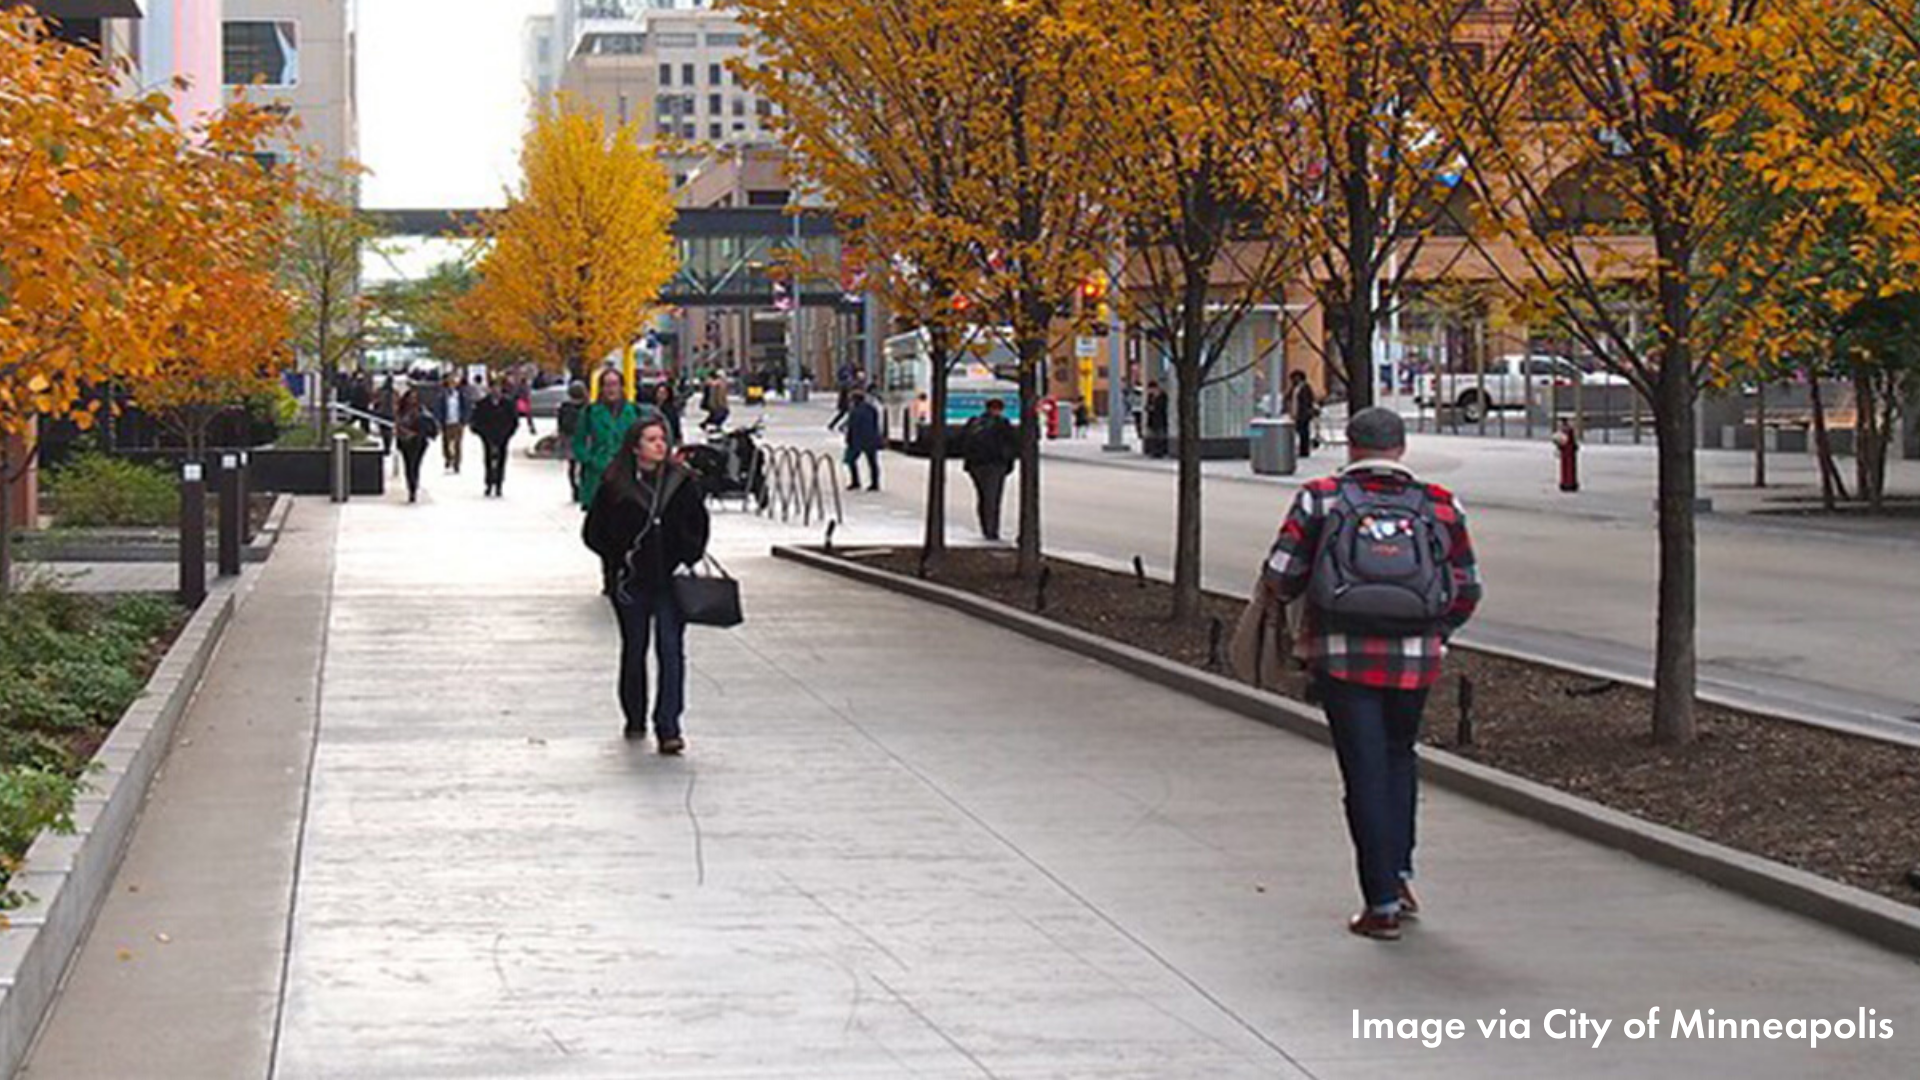 People walking on Nicollet Ave downtown in the fall